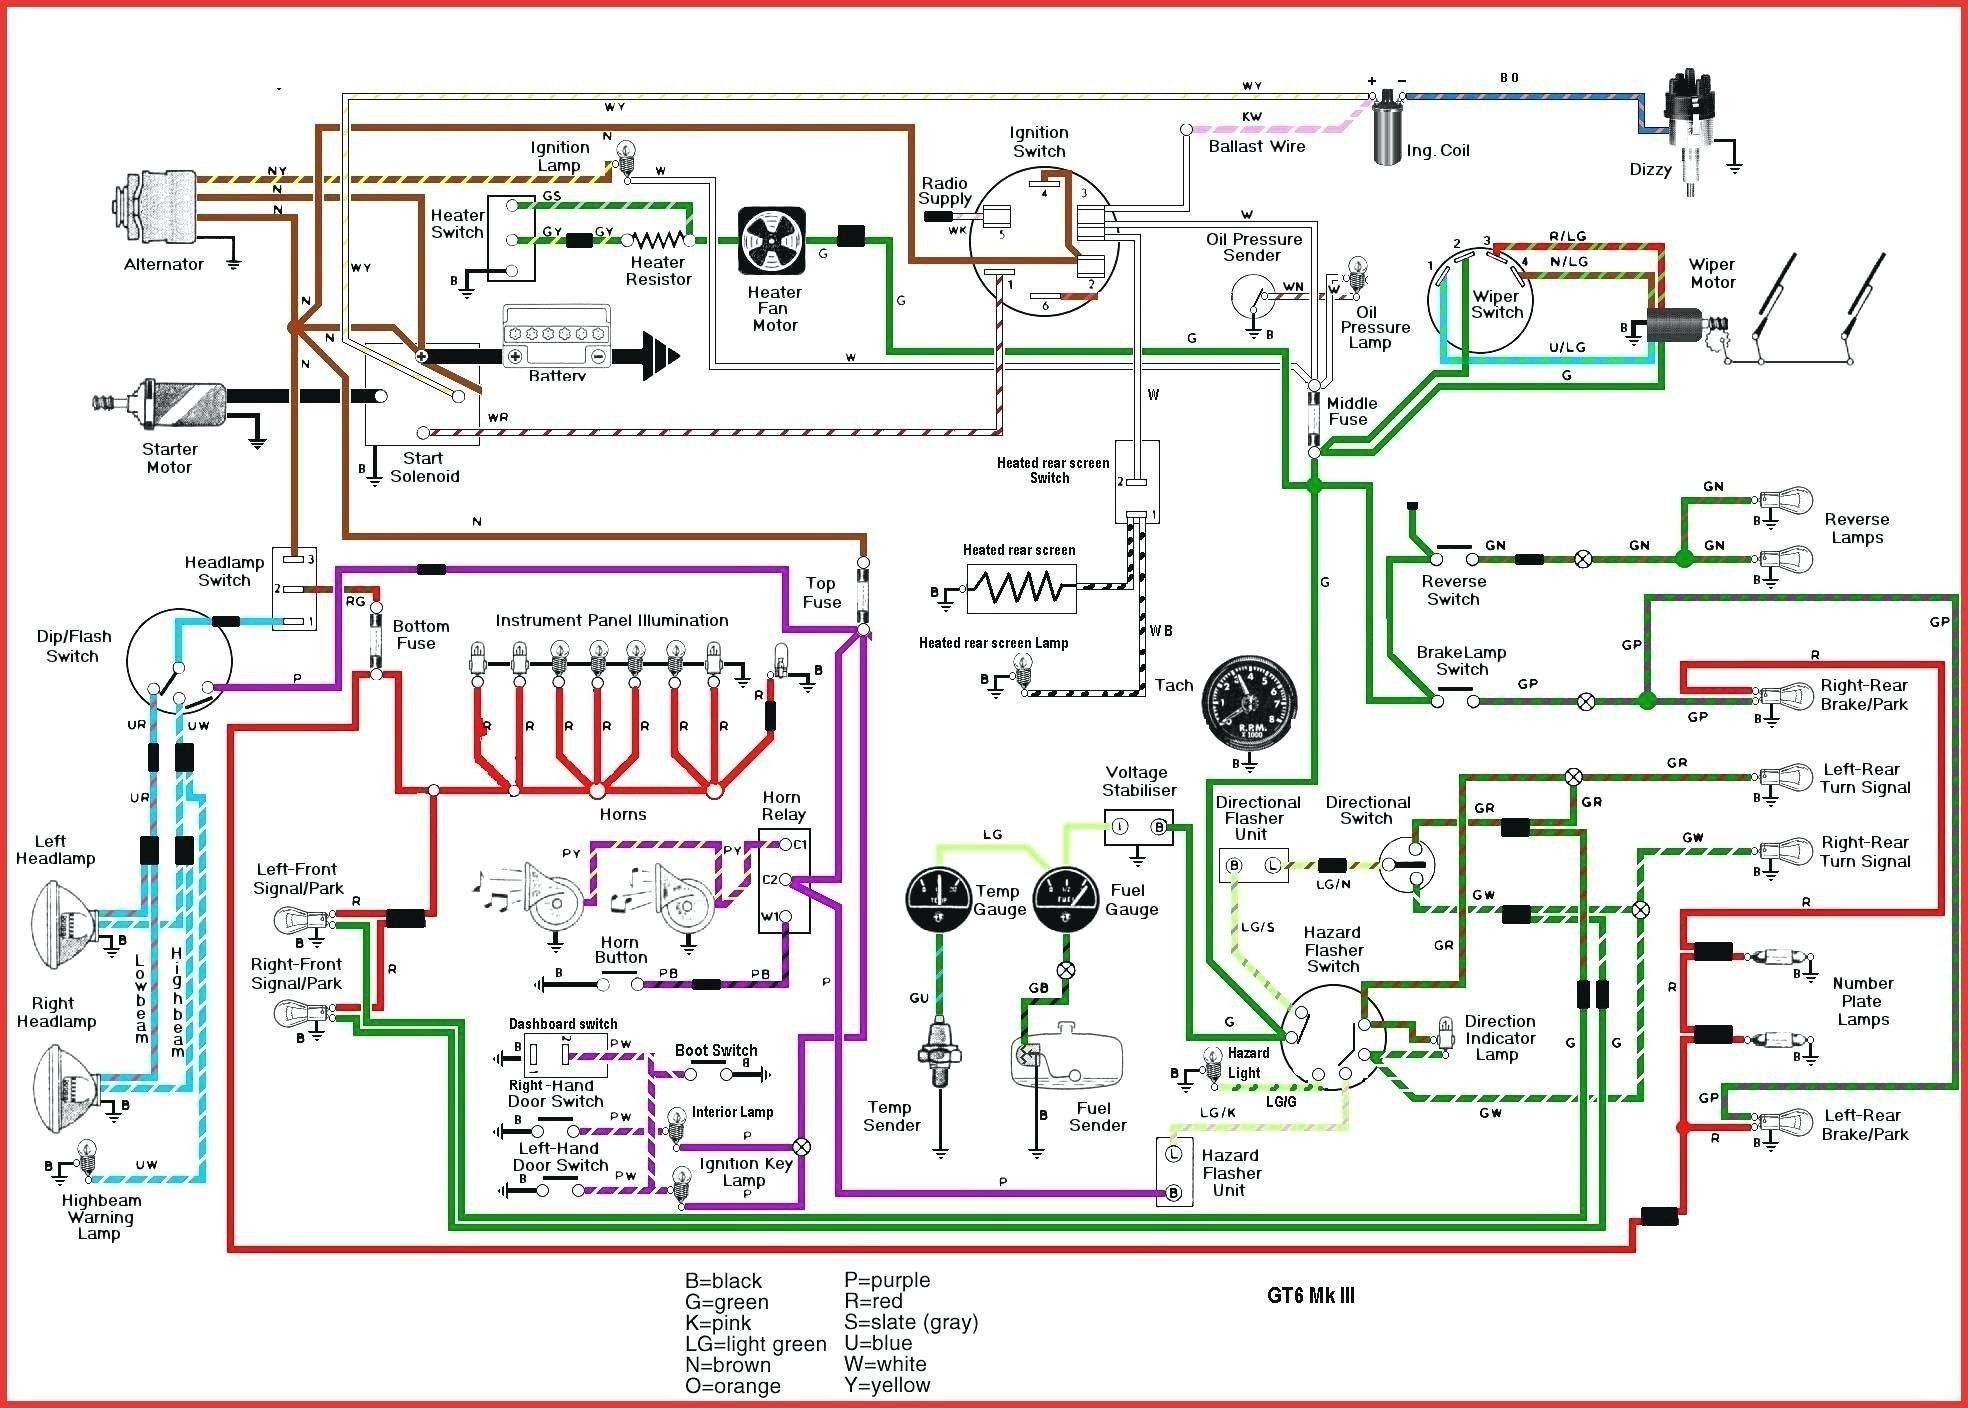 New Home Electrical Wiring Diagram Sample Free Download Diagram Diagramsample Diagramtempl Electrical Circuit Diagram House Wiring Electrical Wiring Diagram